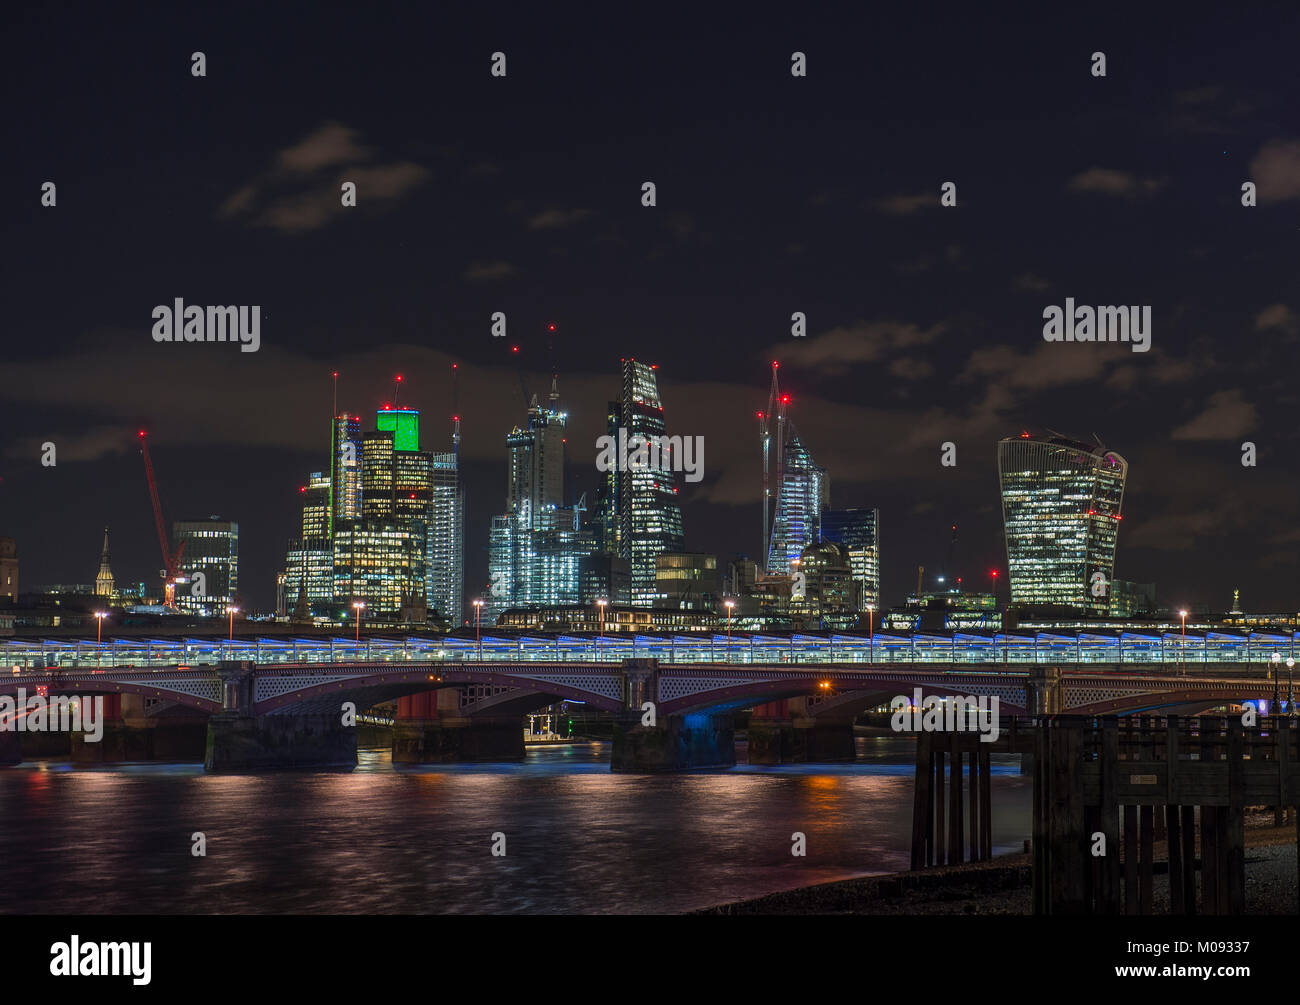 London 18th Jan 2018. Night in central London under the stars with landmark City of London buildings lit up. Credit: Stock Photo